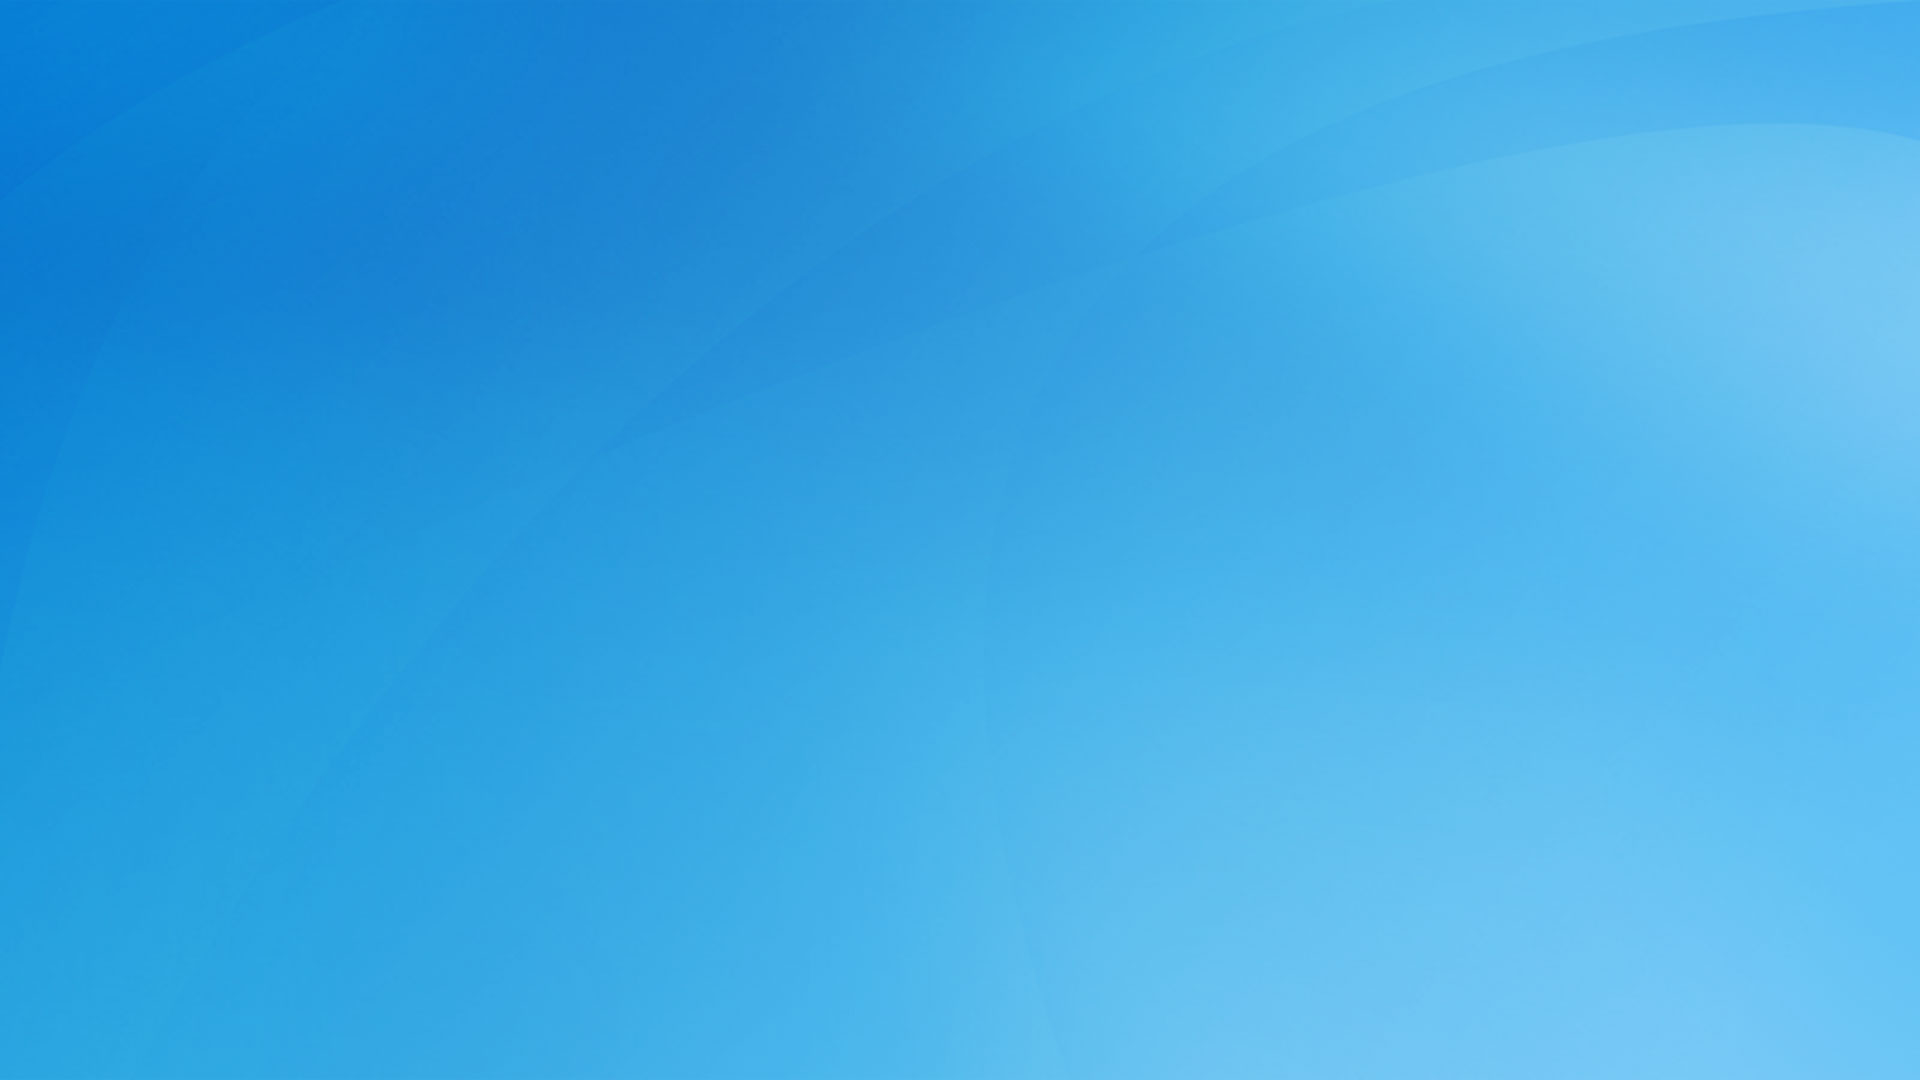 Plain Light Blue Wallpaper 46971 1920x1080 px ...